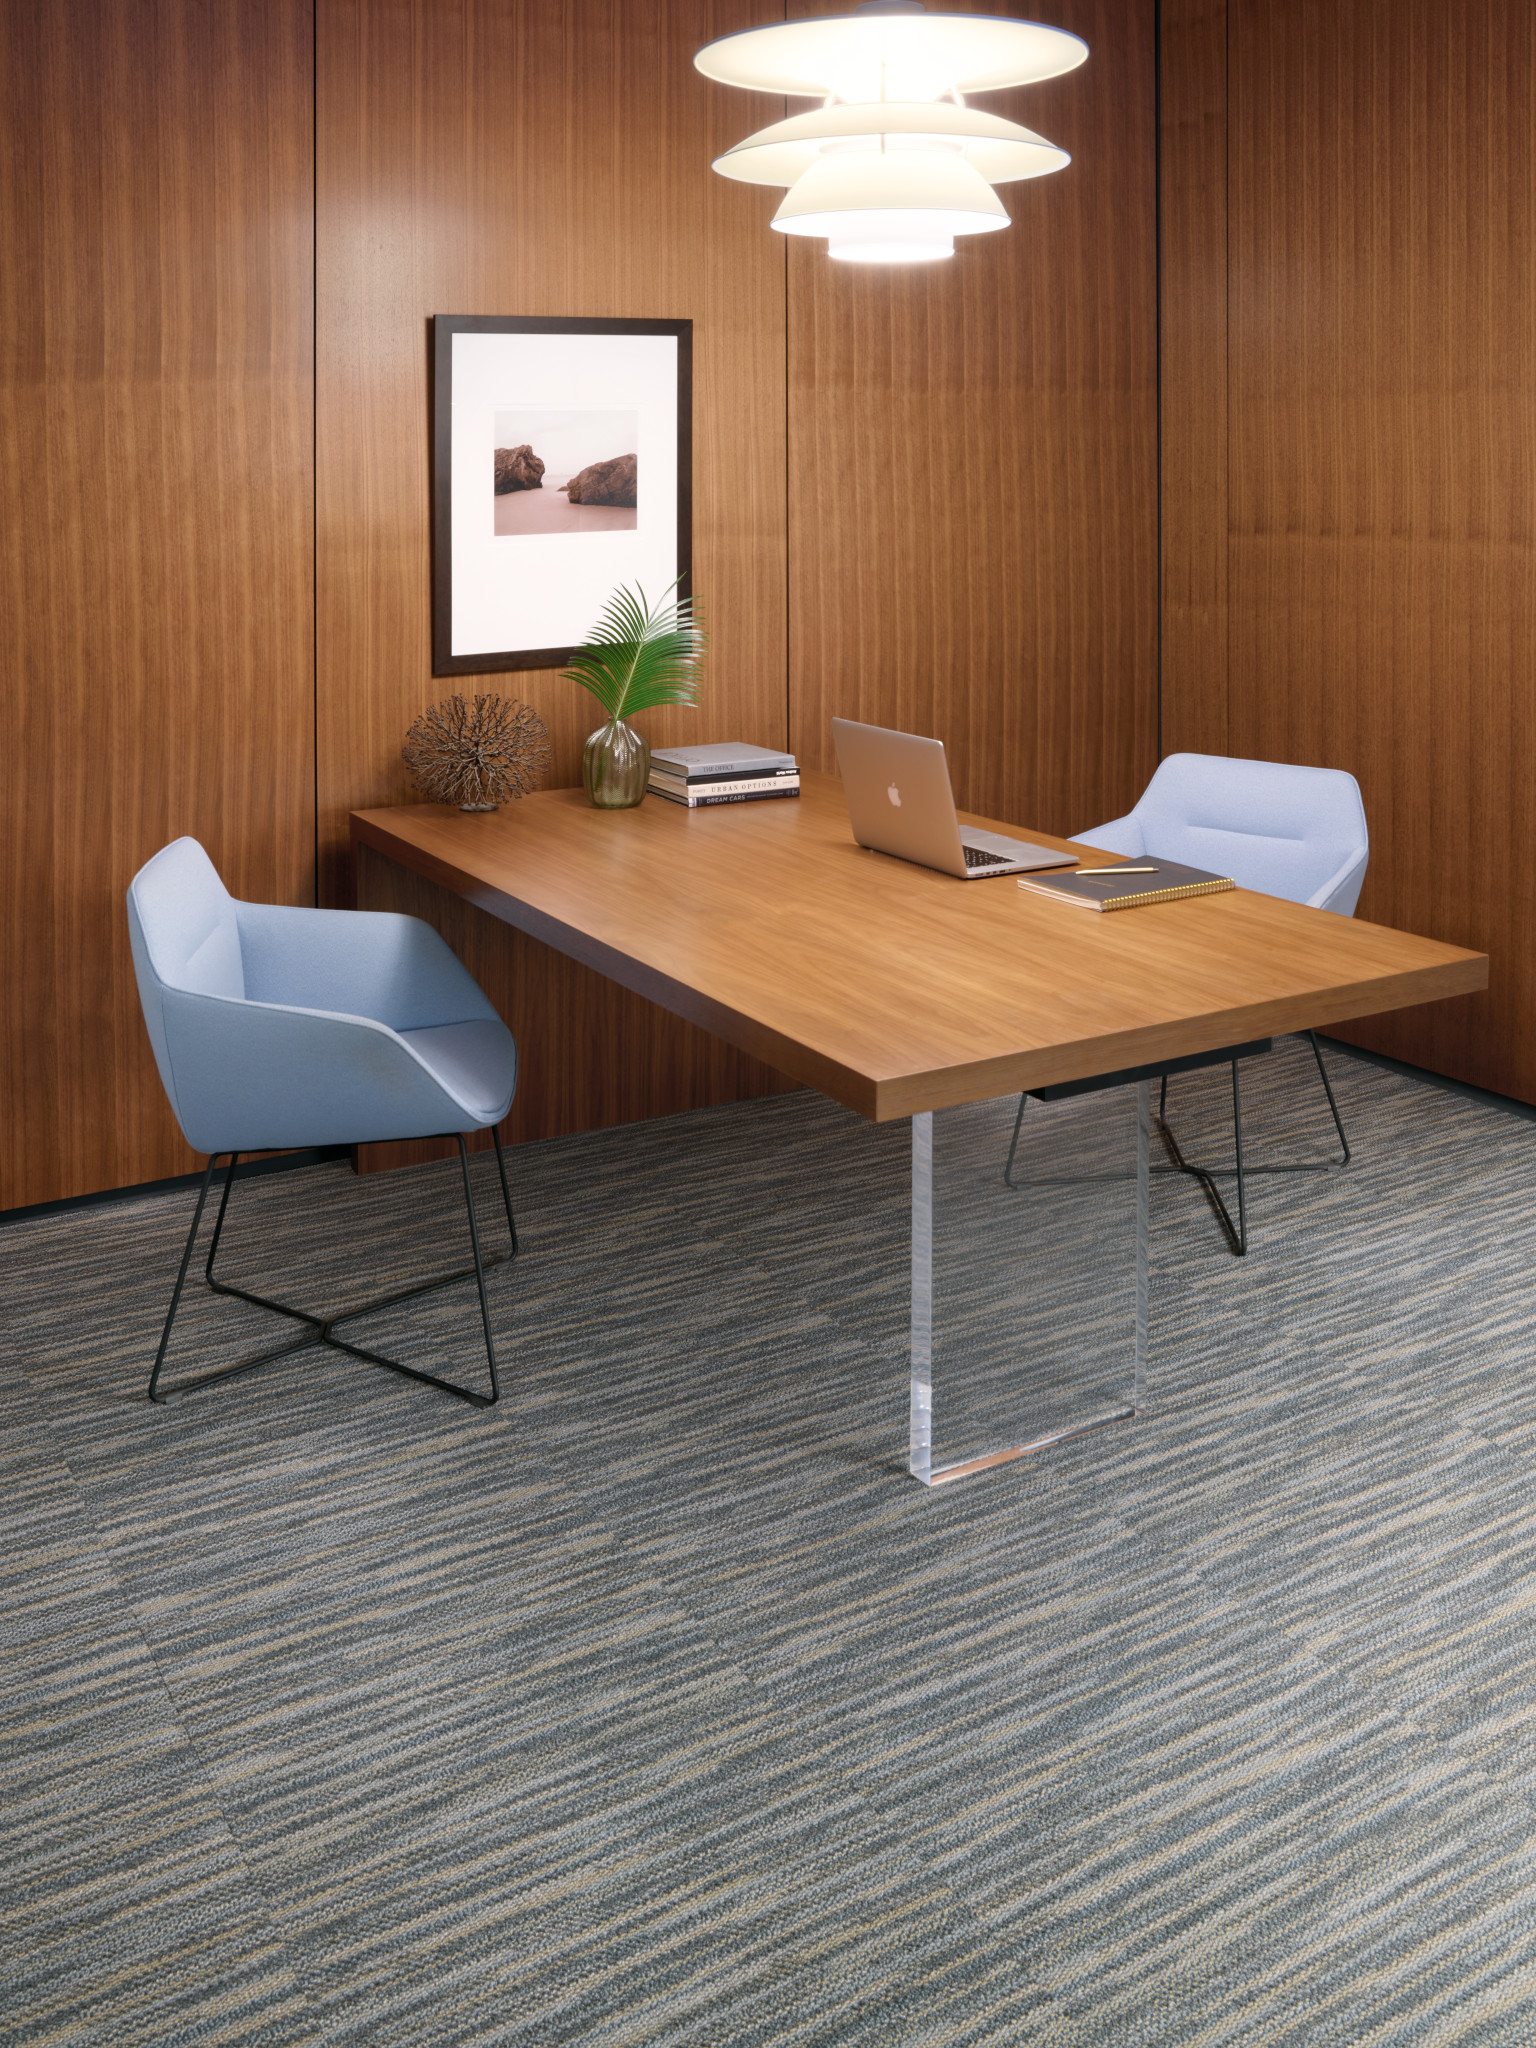 Newly In Sync collection is designed for ease of installation and a positive impact on people and the planet.